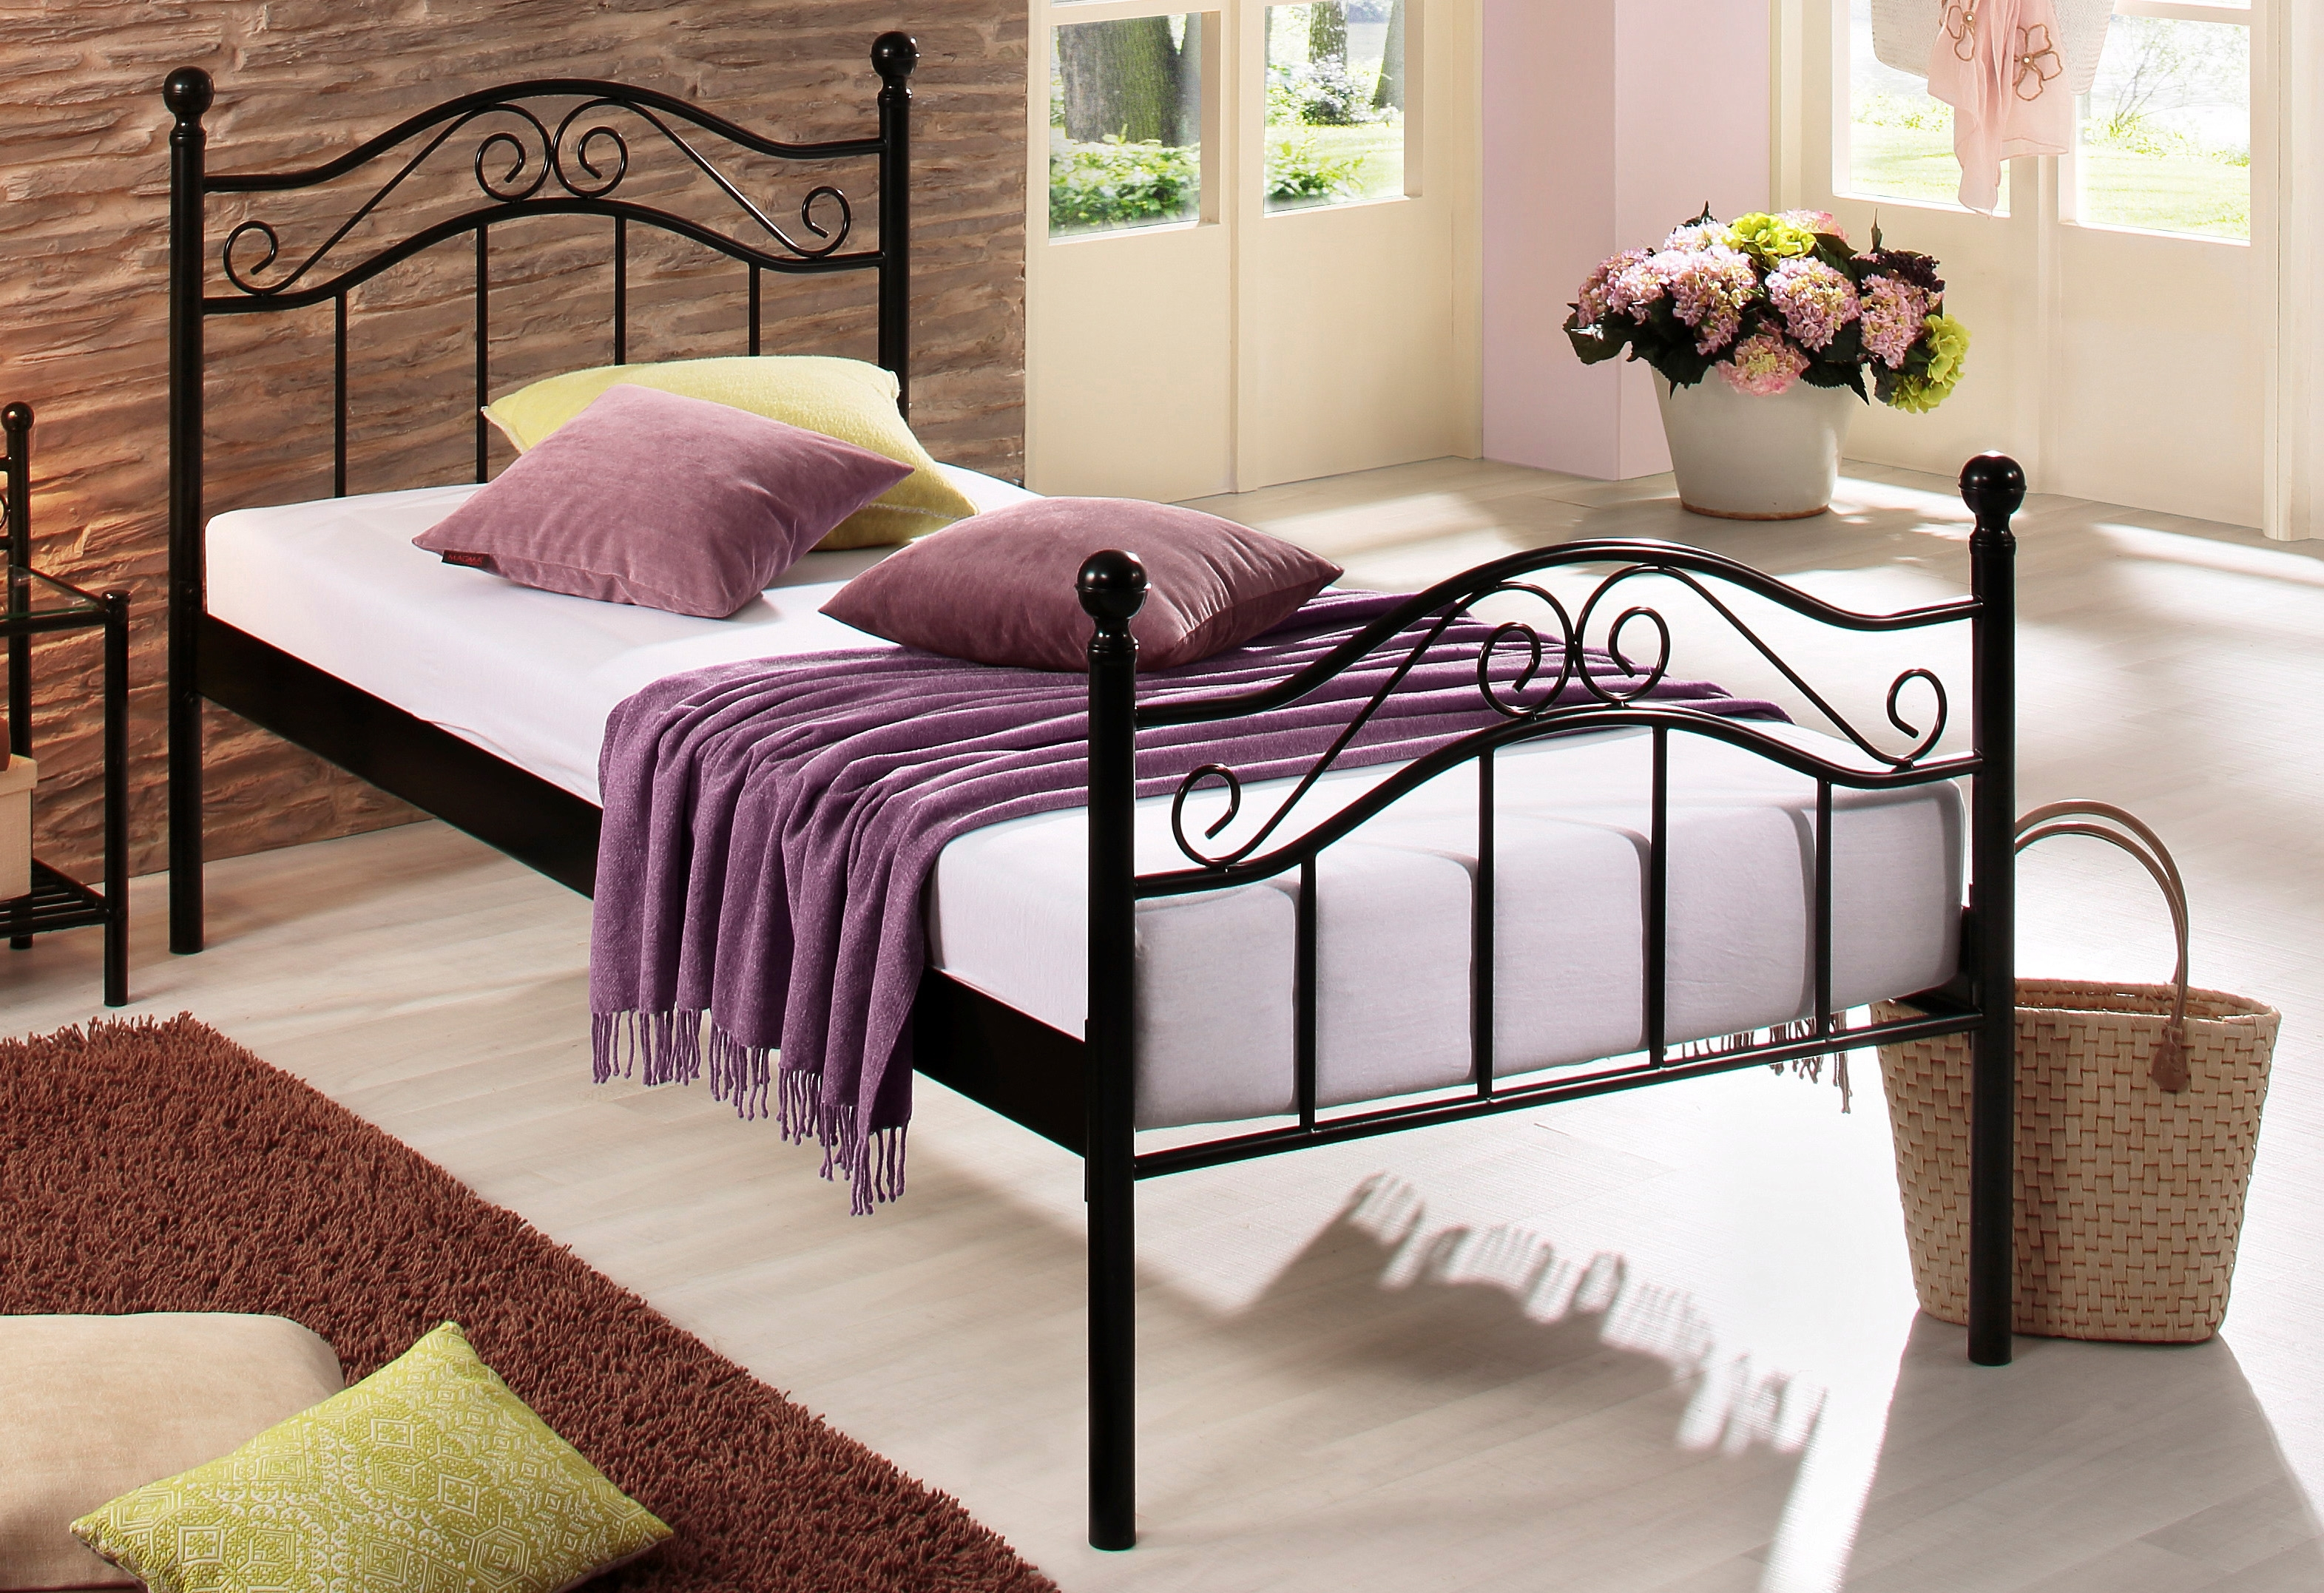 metalen bed in de online winkel otto. Black Bedroom Furniture Sets. Home Design Ideas